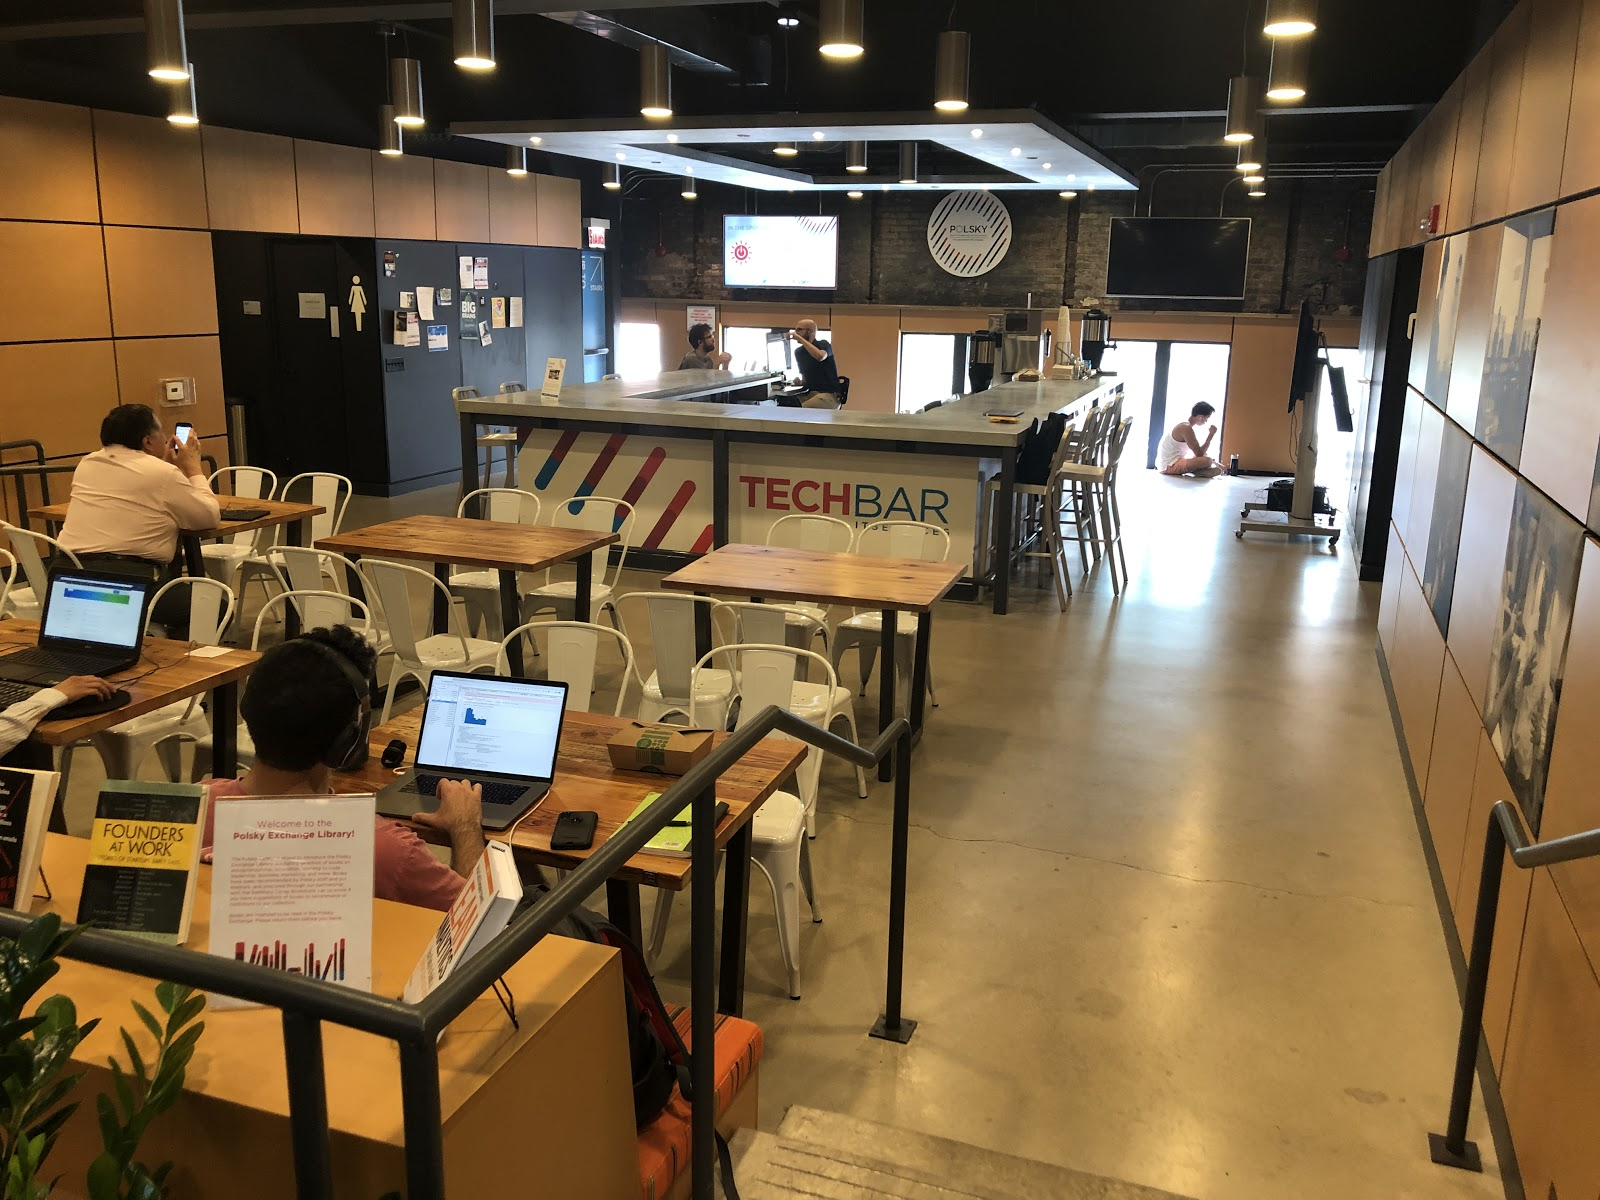 The onsite Tech Bar at Polsky Exchange serves as a more convenient and lower cost alternative to the Genius Bar or Geek Squad for students, faculty and members